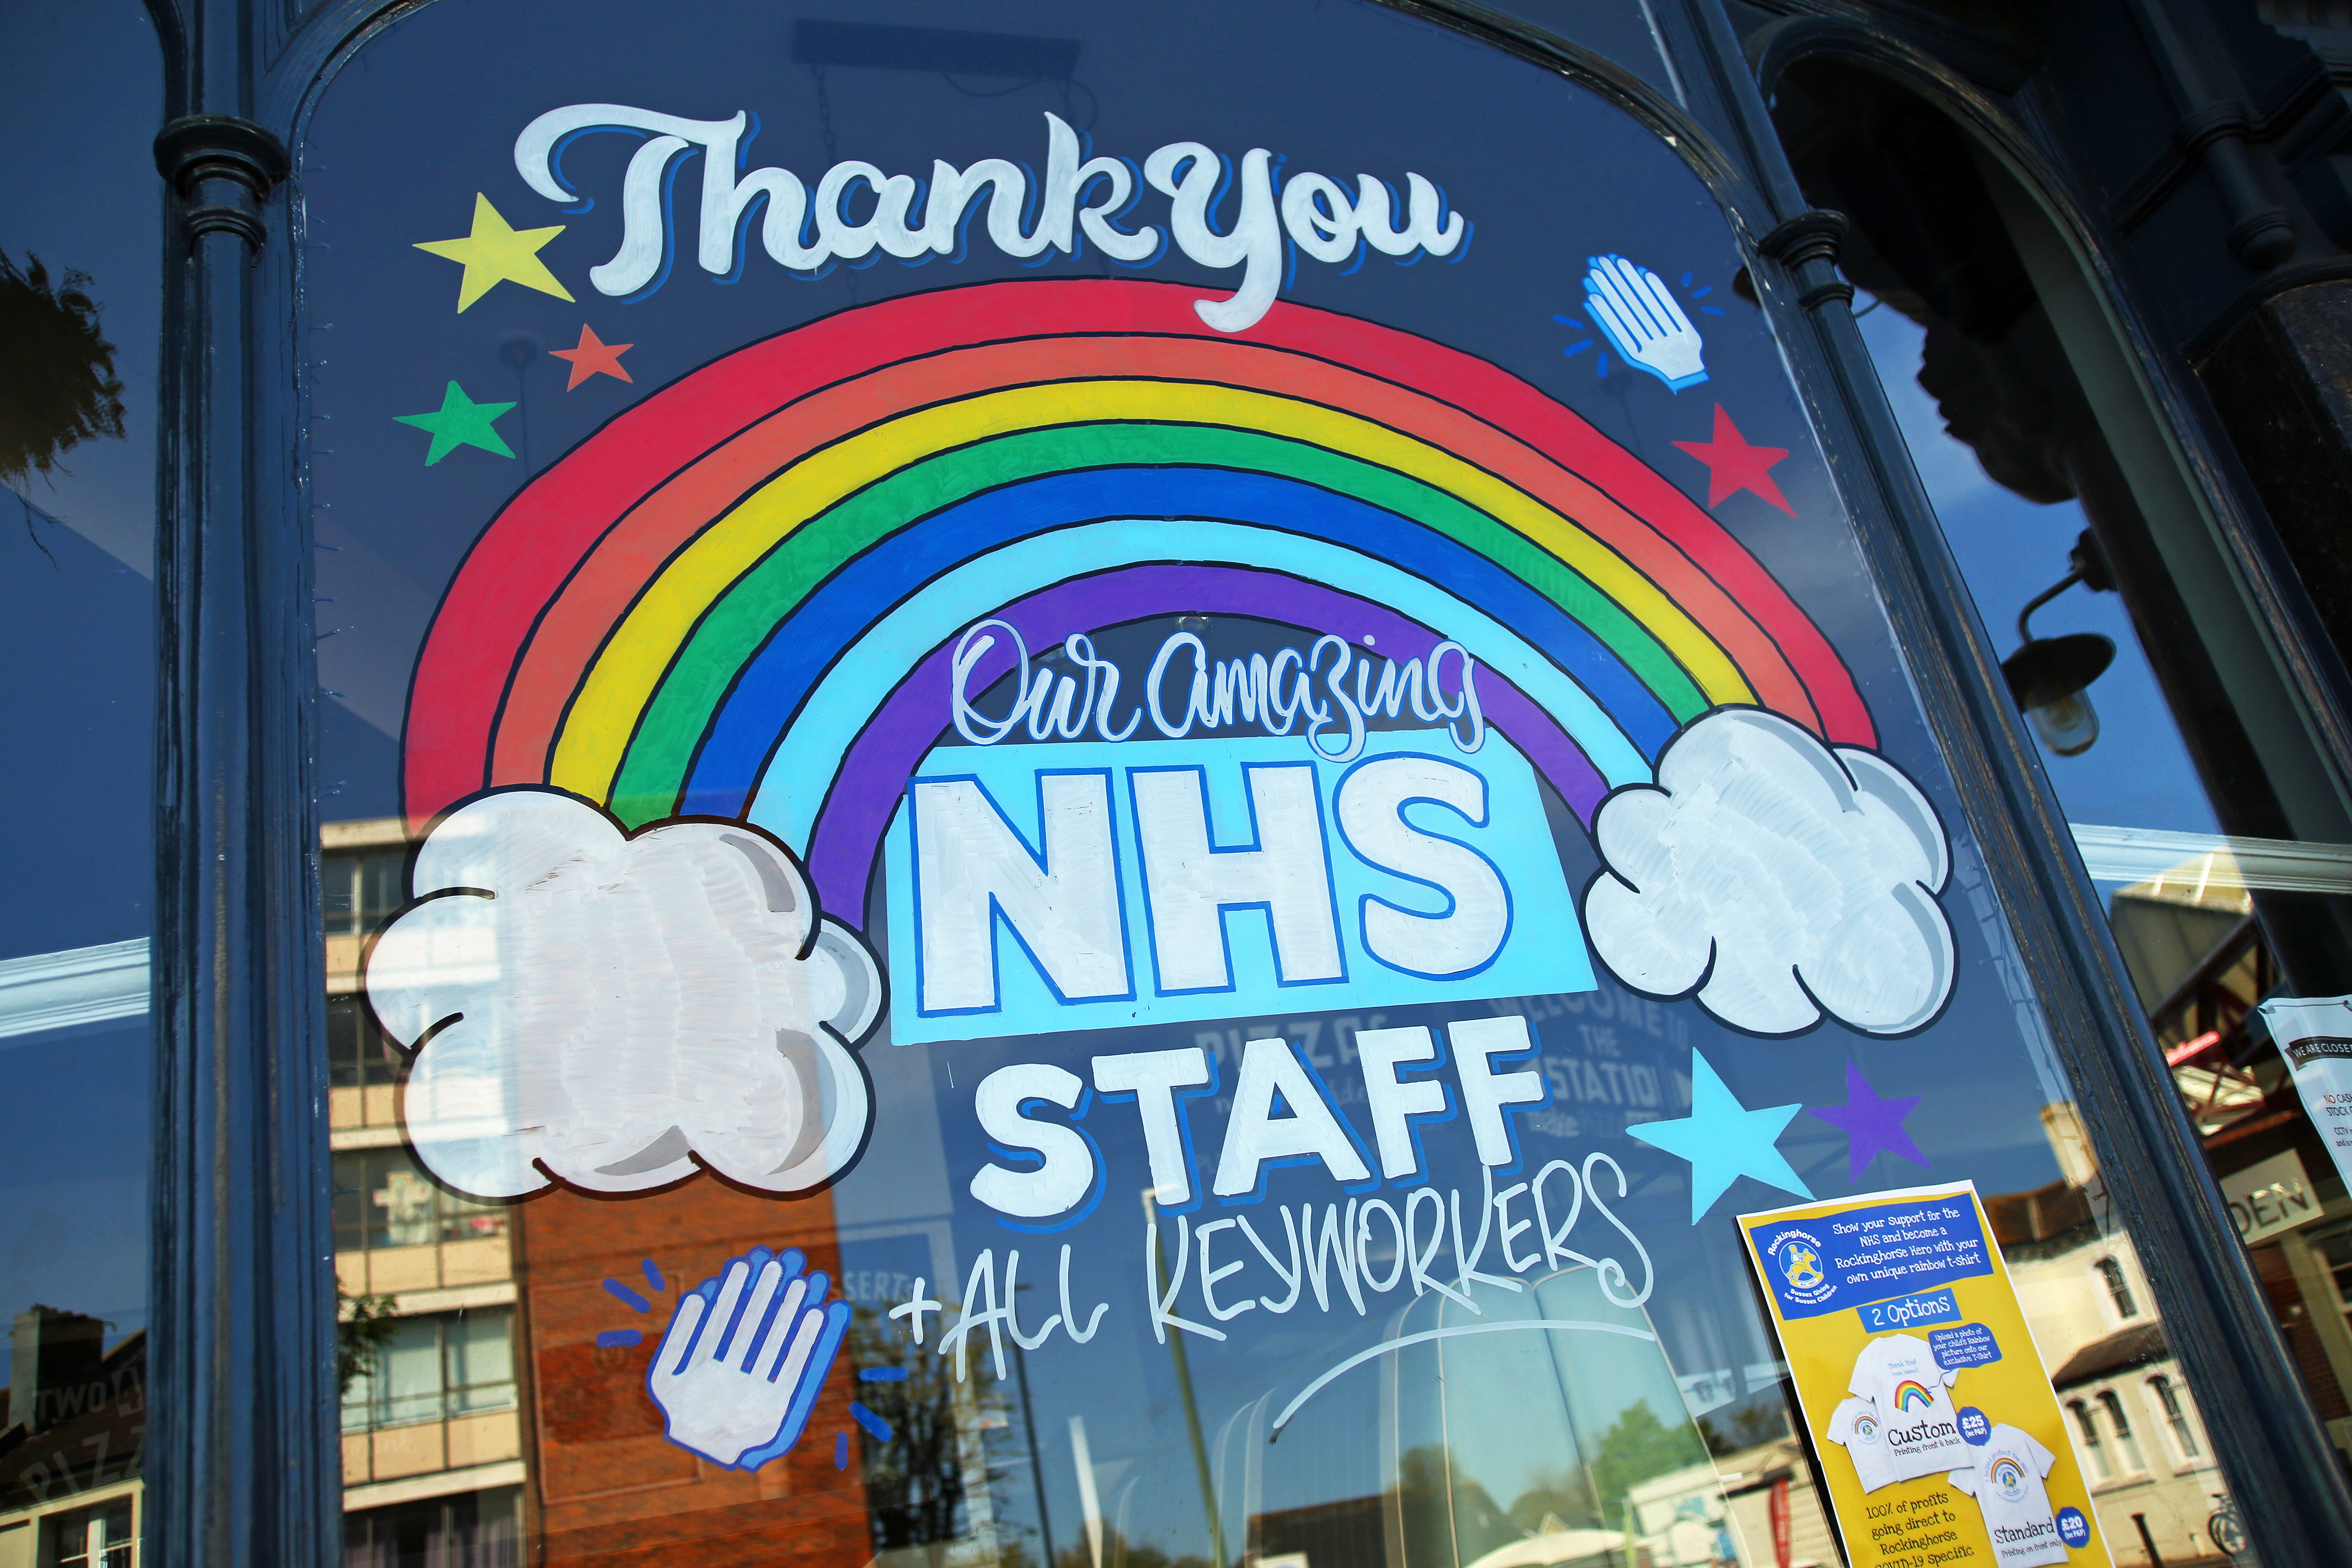 A colourful window display in Hove thanks the NHS staff and key workers as the UK continues in lockdown to help curb the spread of the coronavirus.